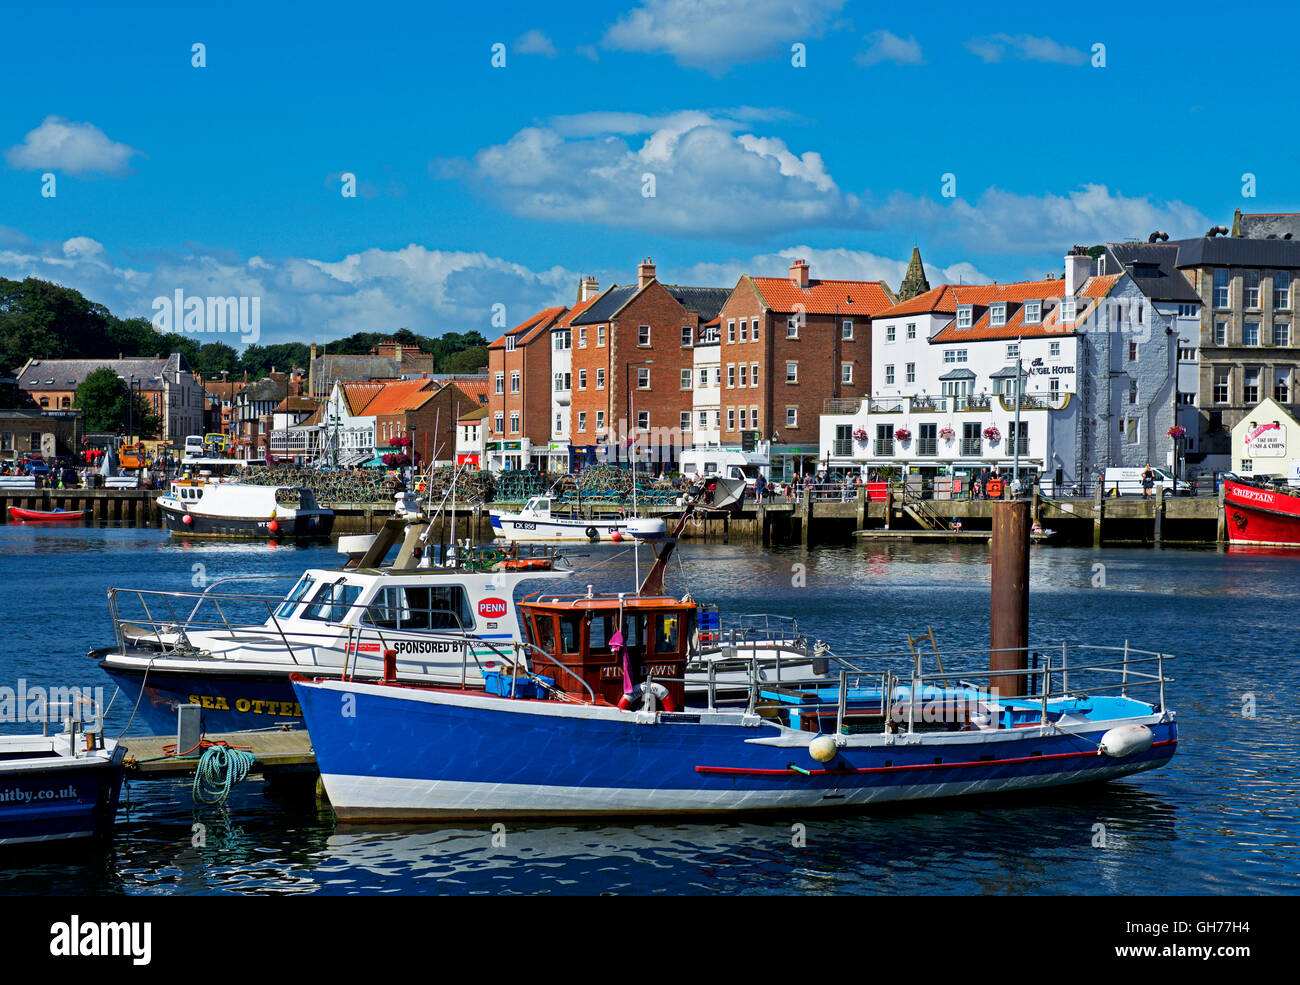 The harbour, Whitby, North Yorkshire, England UK - Stock Image